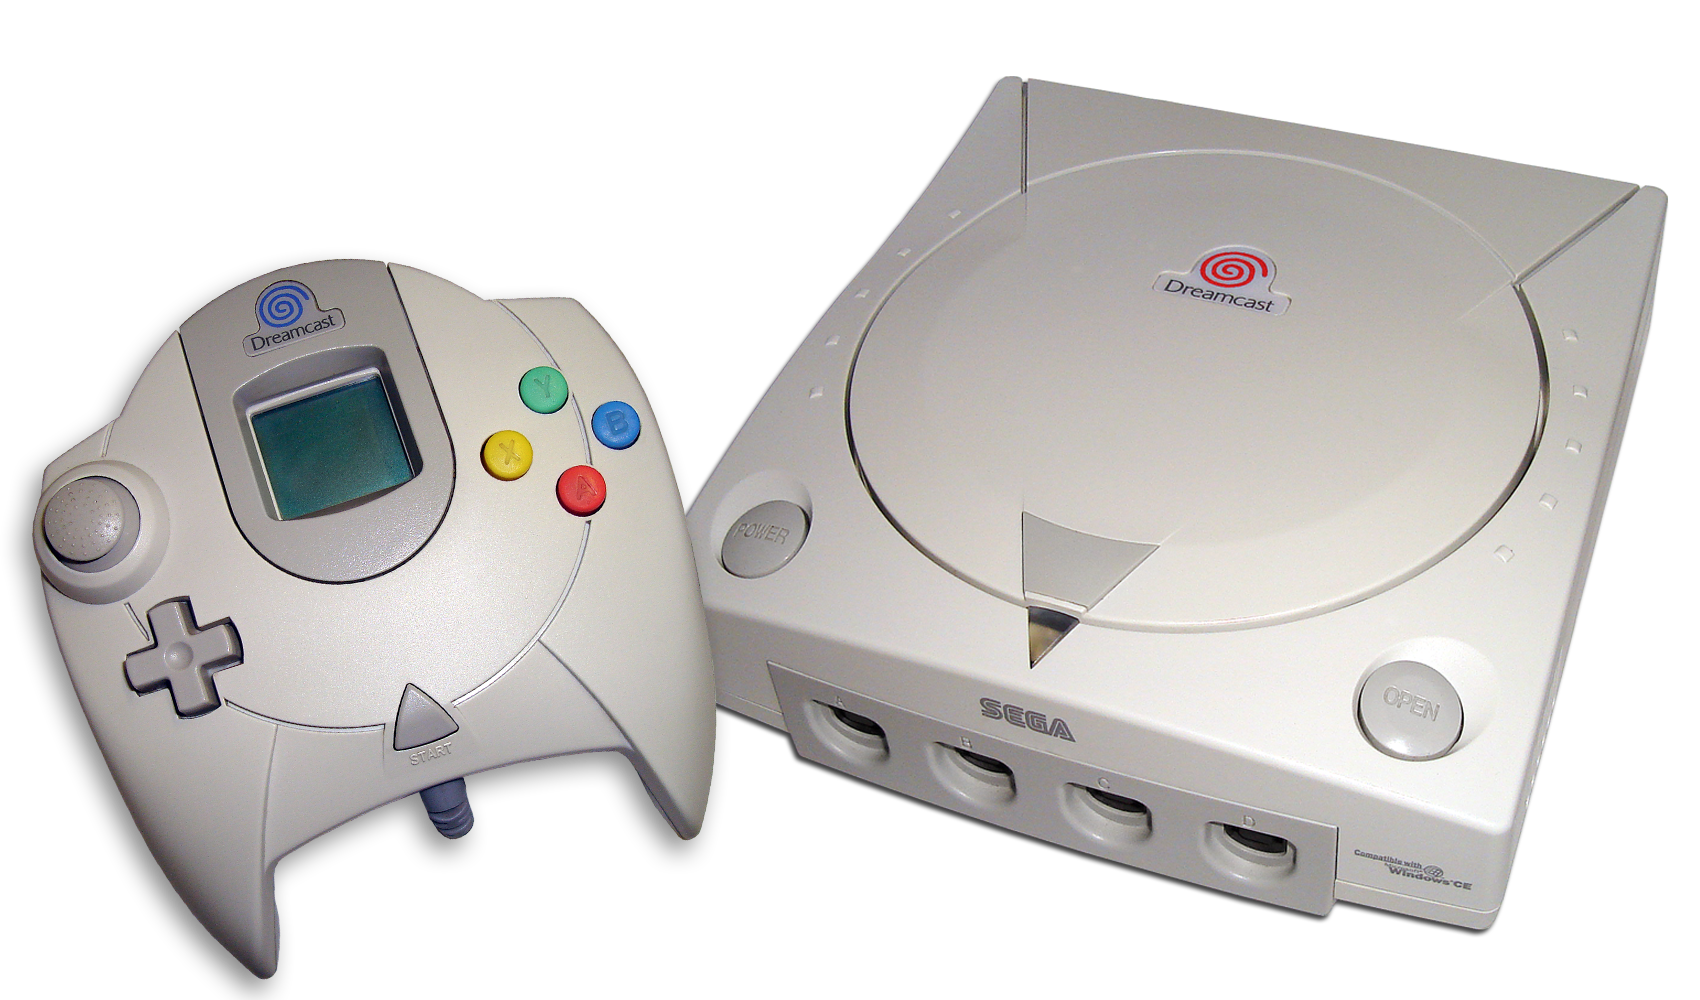 Dreamcast | Sega Wiki | FANDOM powered by Wikia